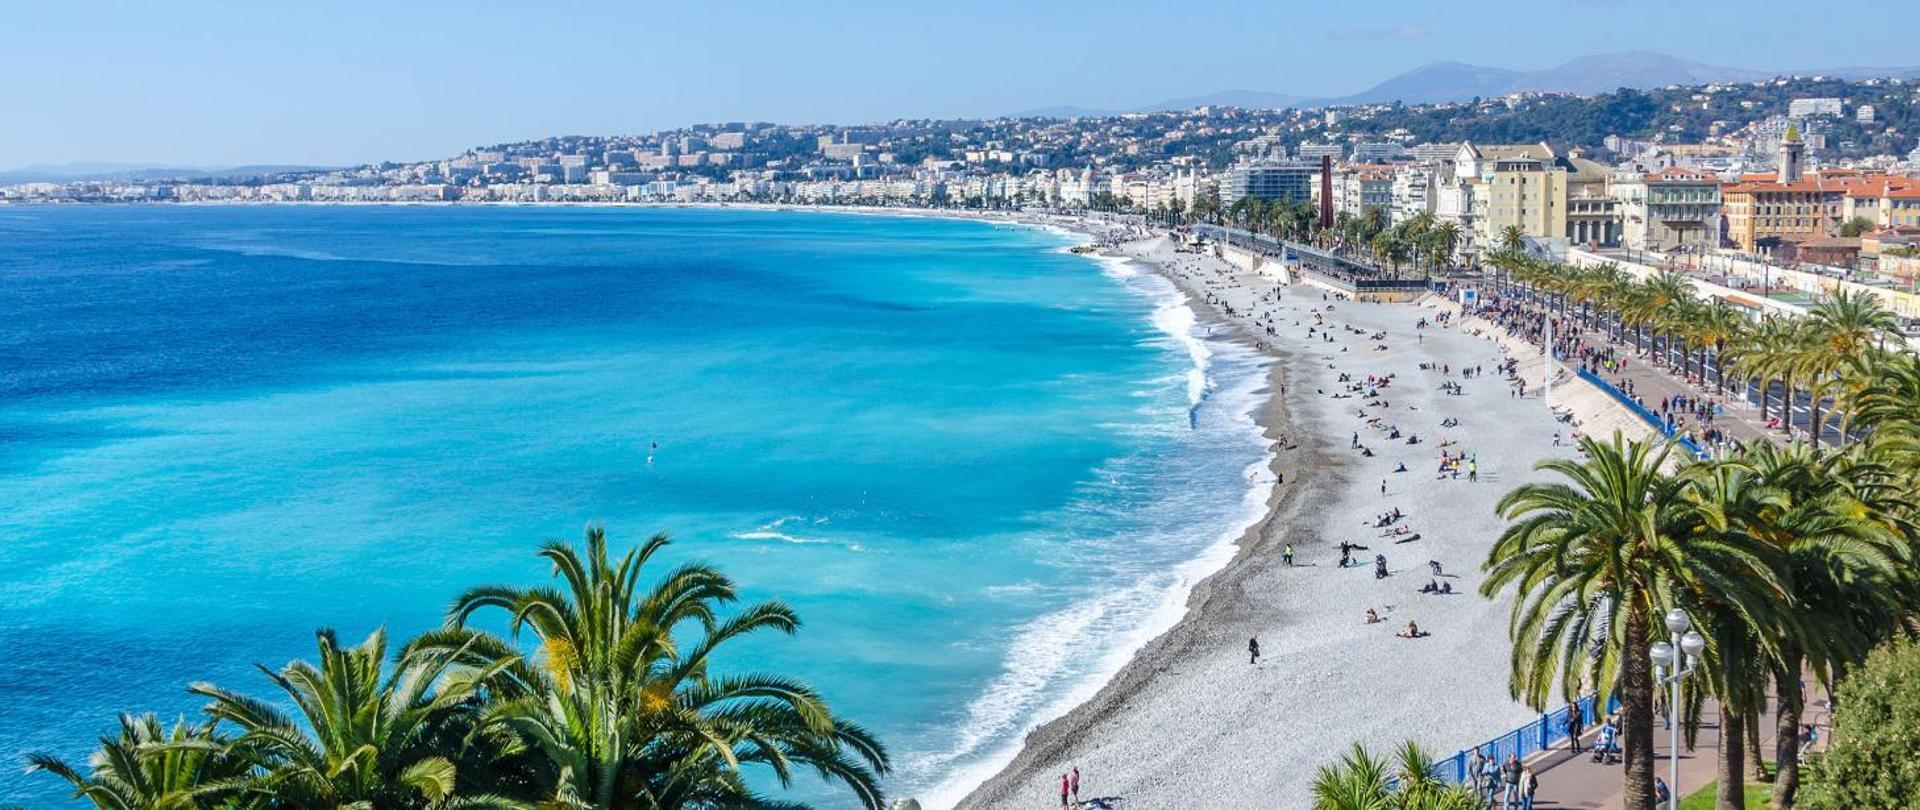 The seafront at Nice in the south of France